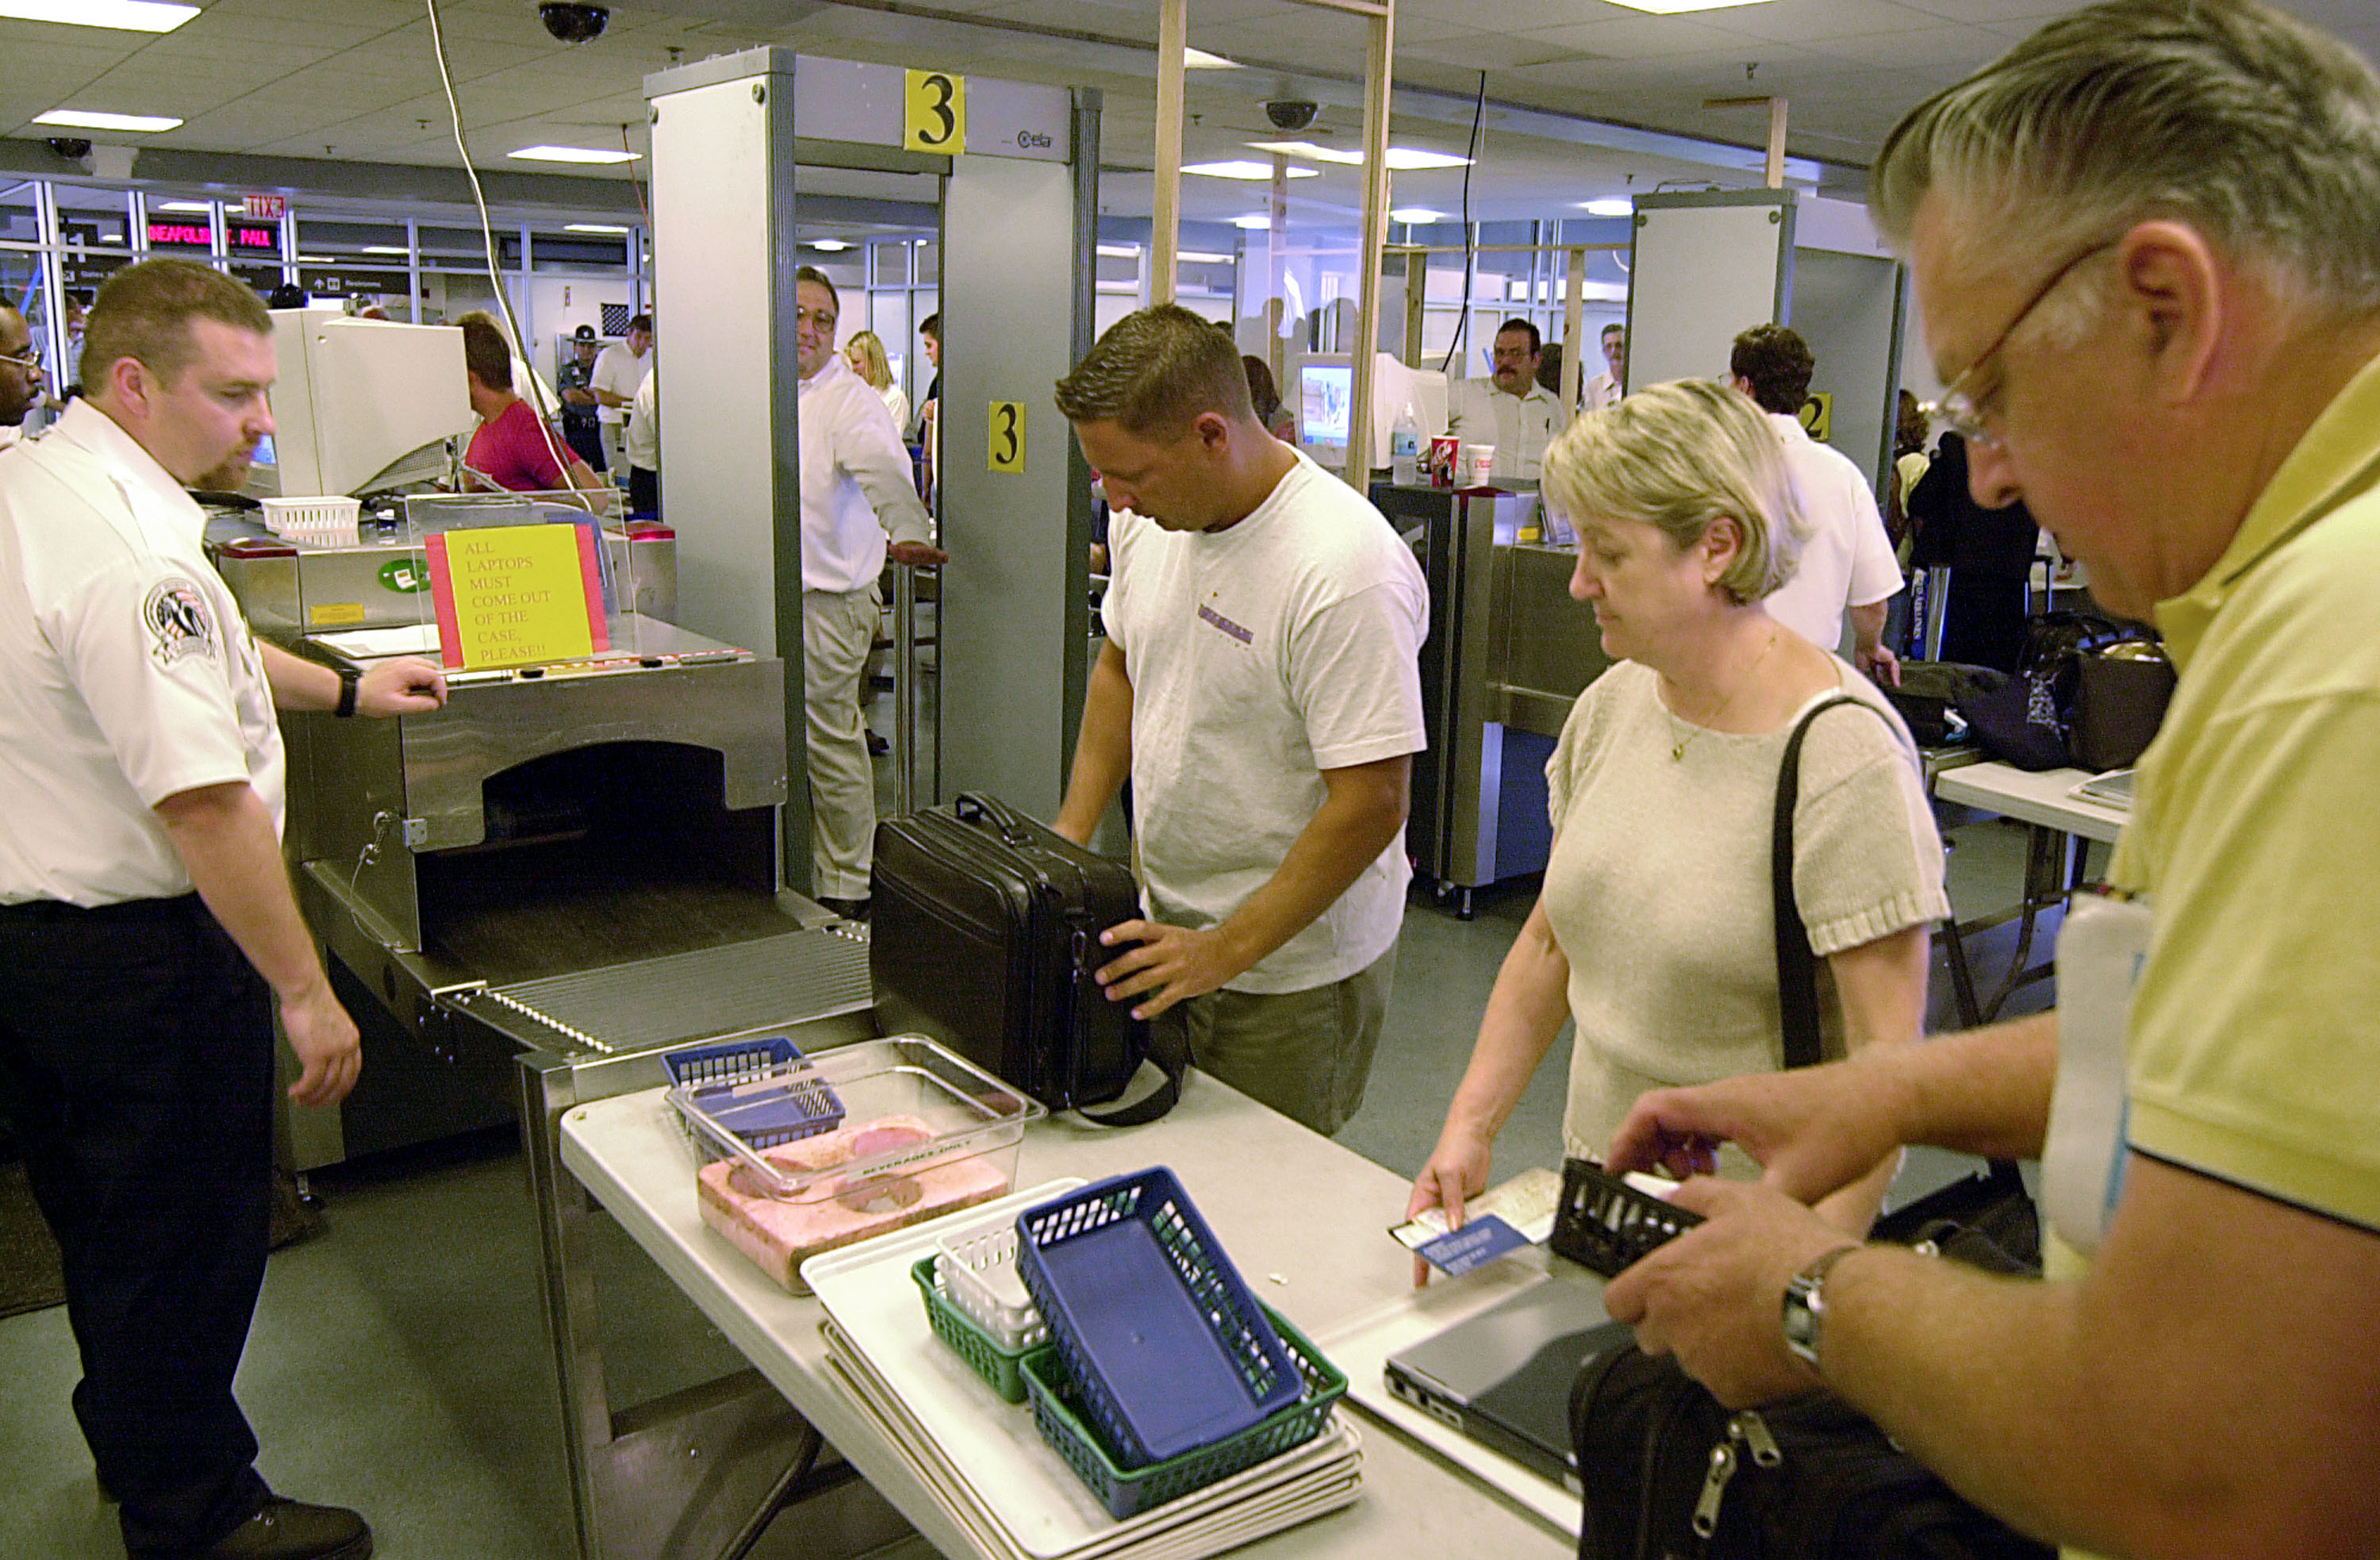 tips to reduce tsa lines, airport security wait times